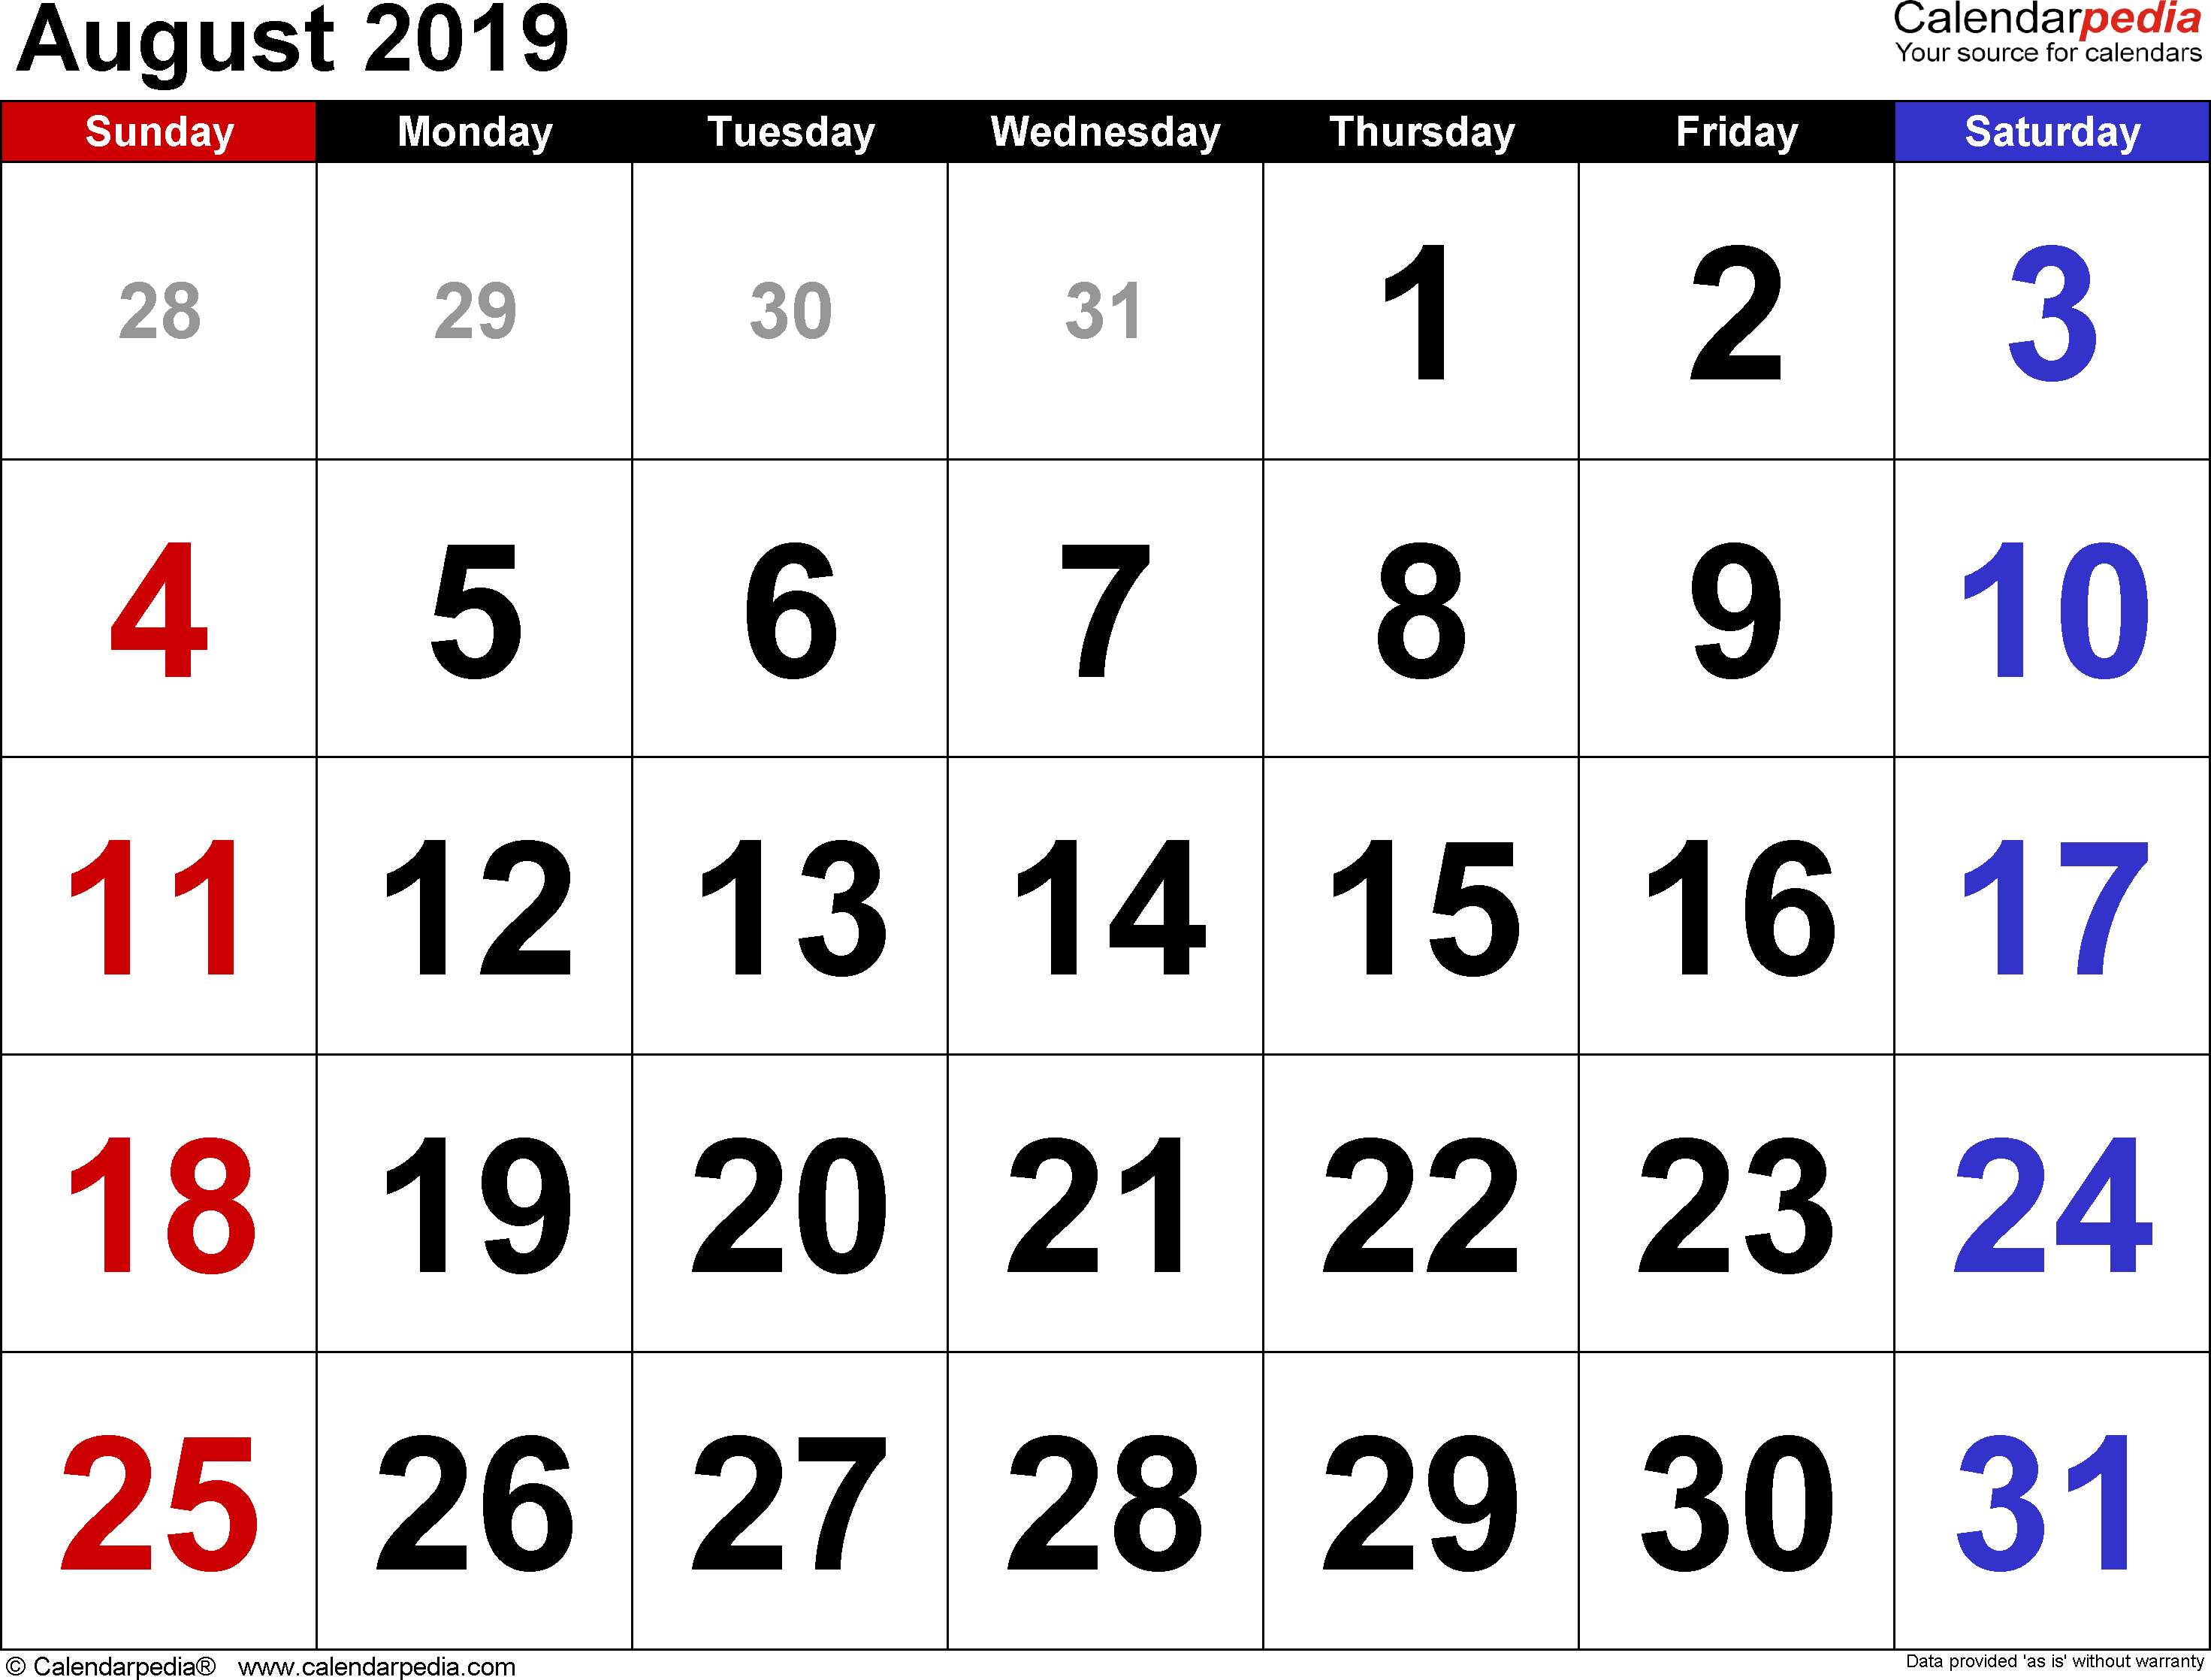 August 2019 calendar, landscape orientation, large numerals, available as printable templates for Word, Excel and PDF